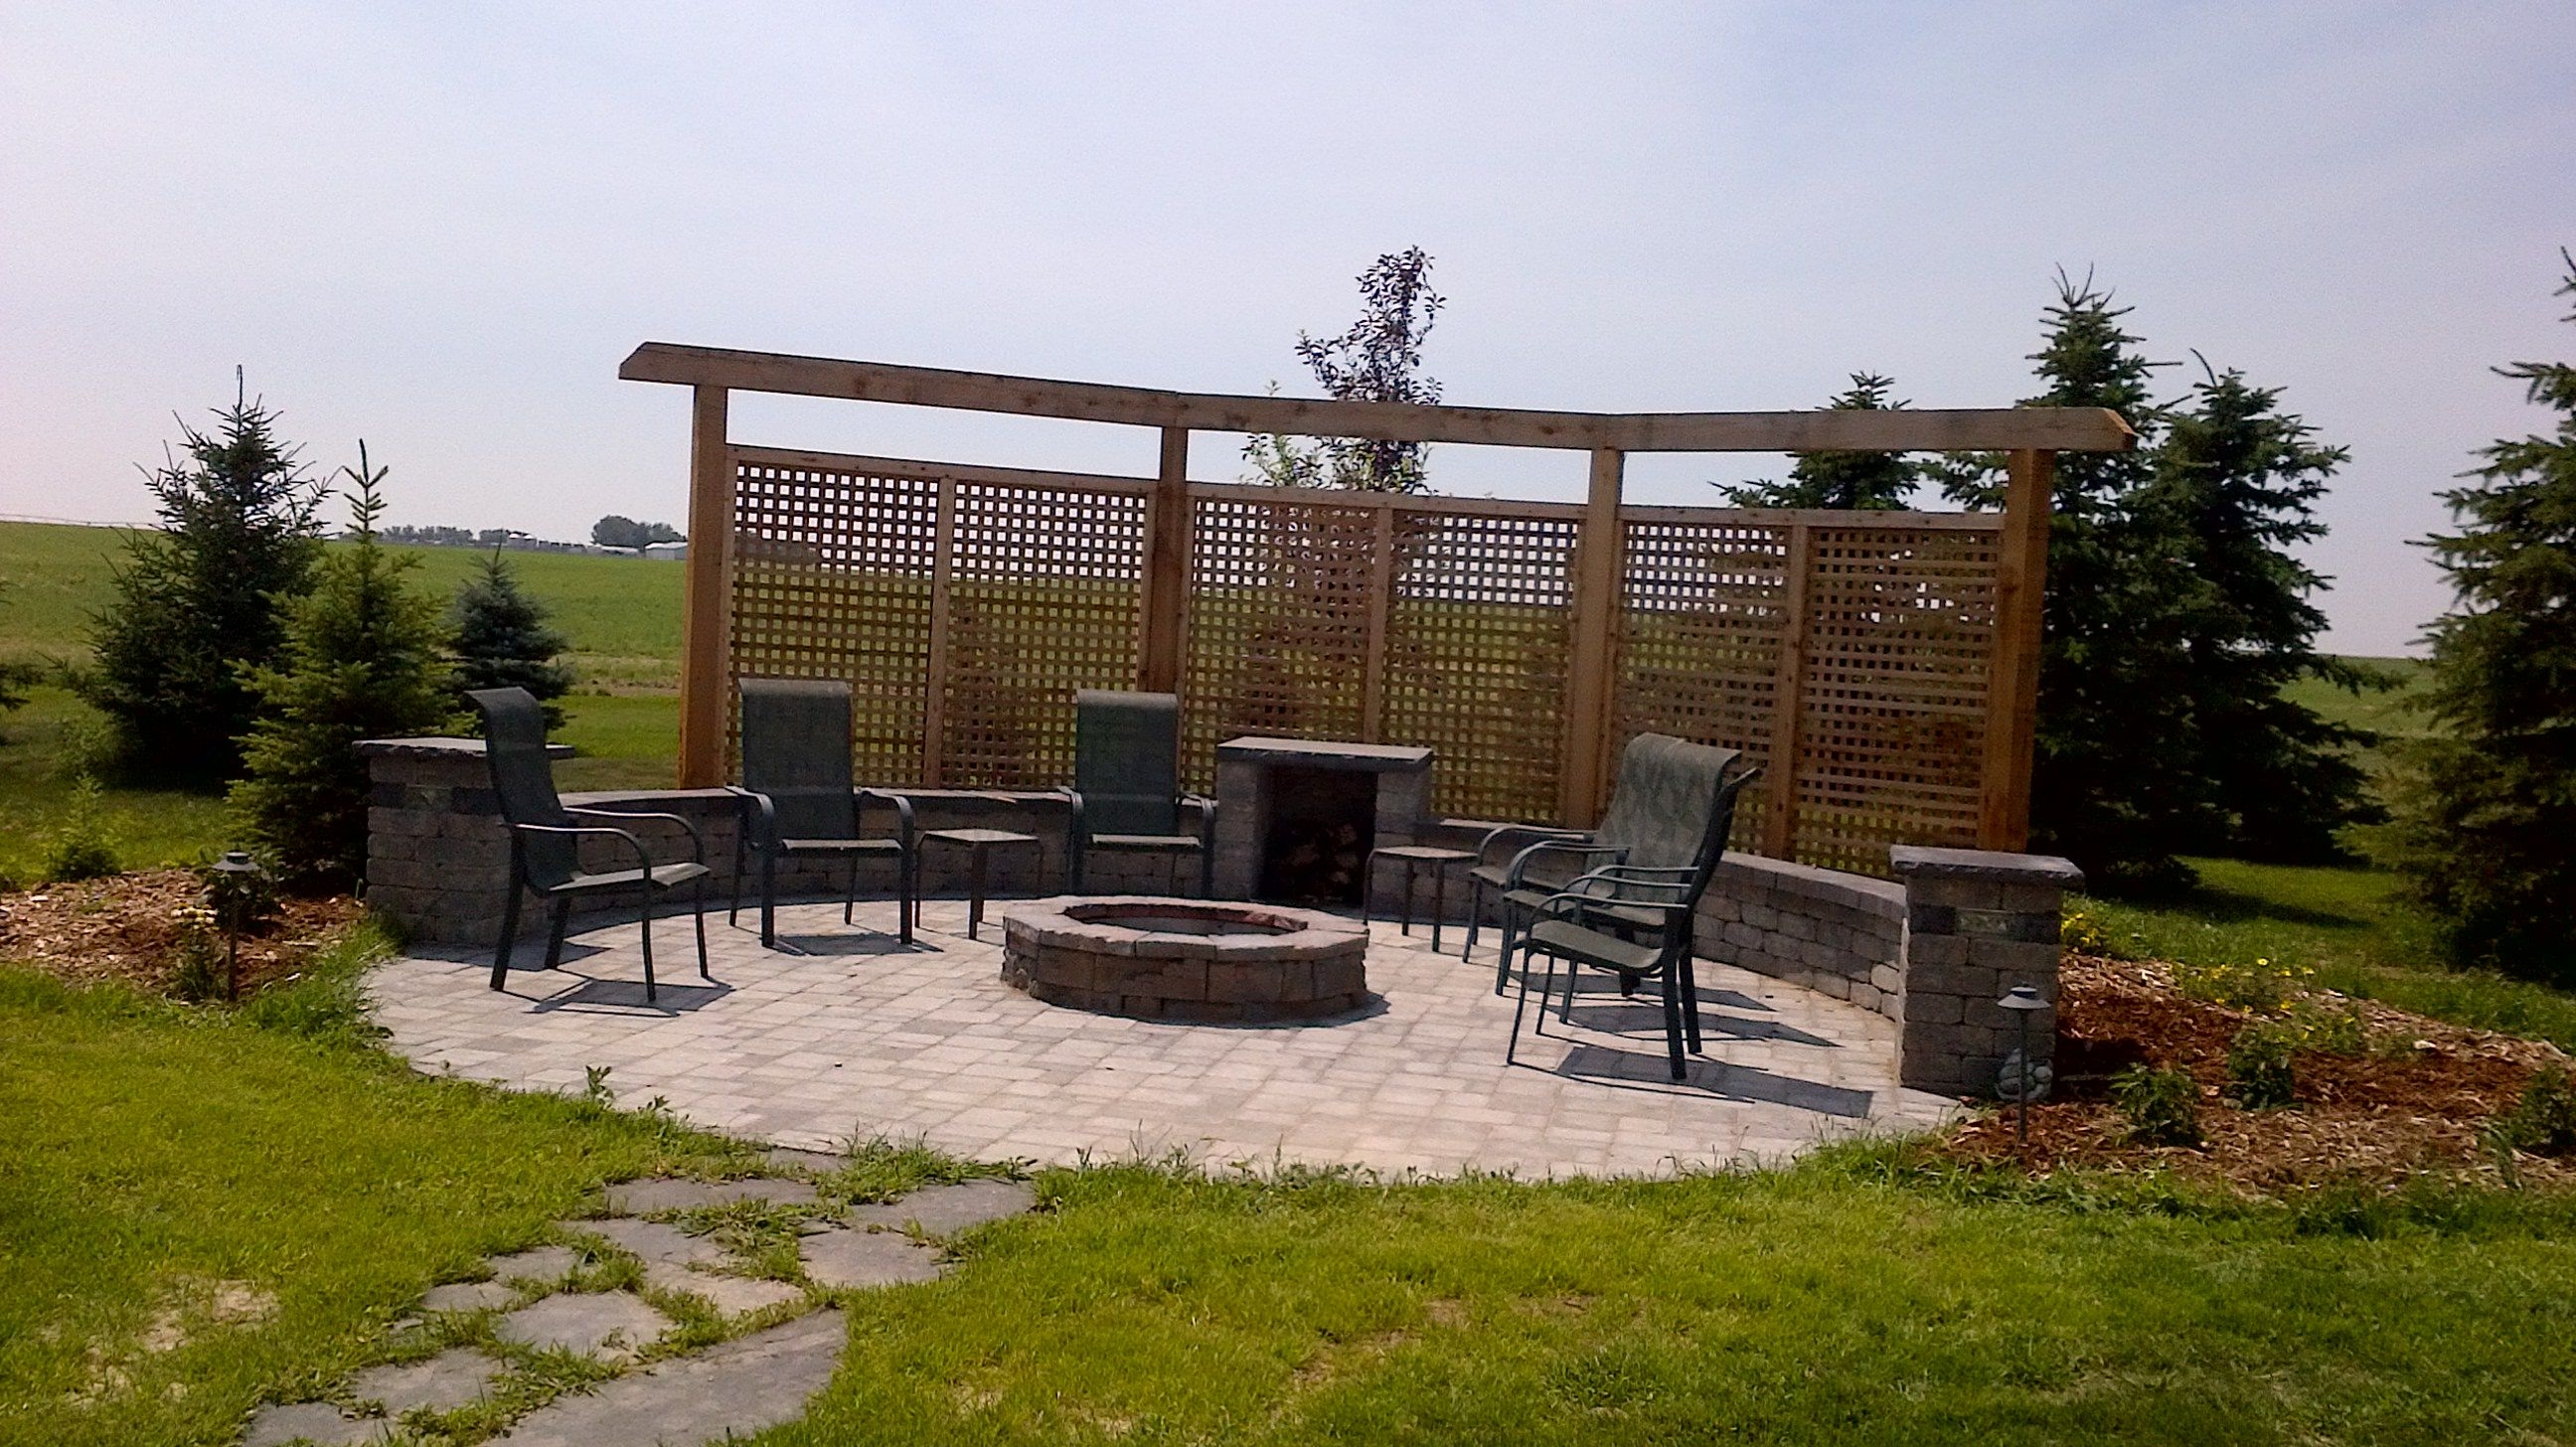 Amazing Fire Pit Area With Cedar Wind Wall And Seating Wall And Pillars Surrounding The Pad Van Tryp Residence Outdoor Rooms Backyard Backyard Privacy